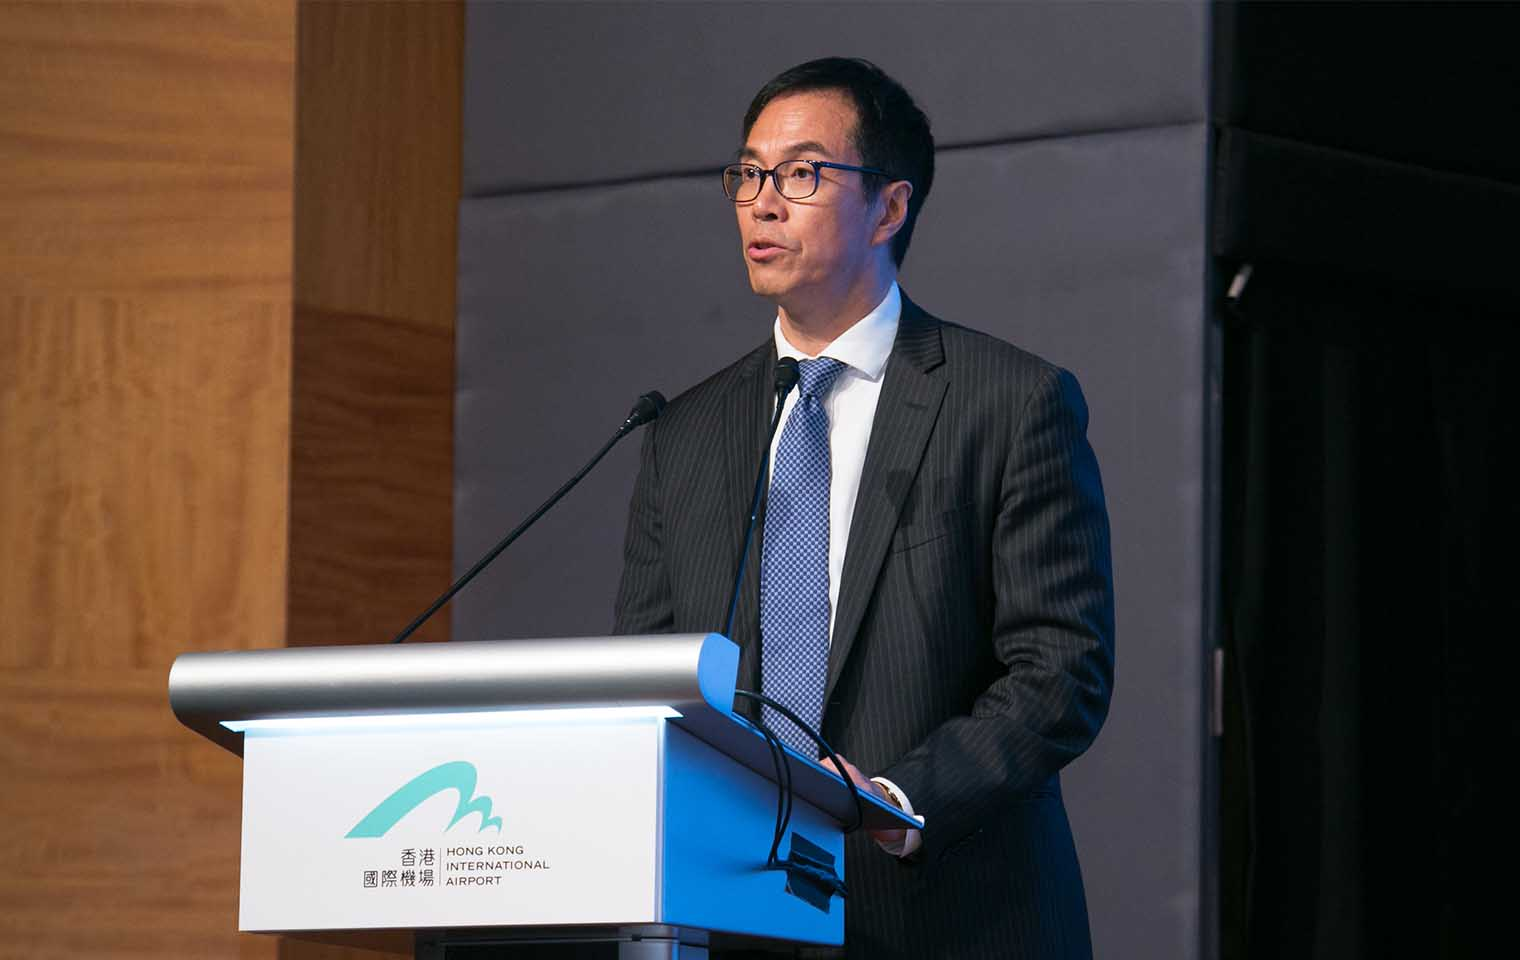 <strong>Mr. Alex Kwan</strong><br>Airport Authority Hong Kong